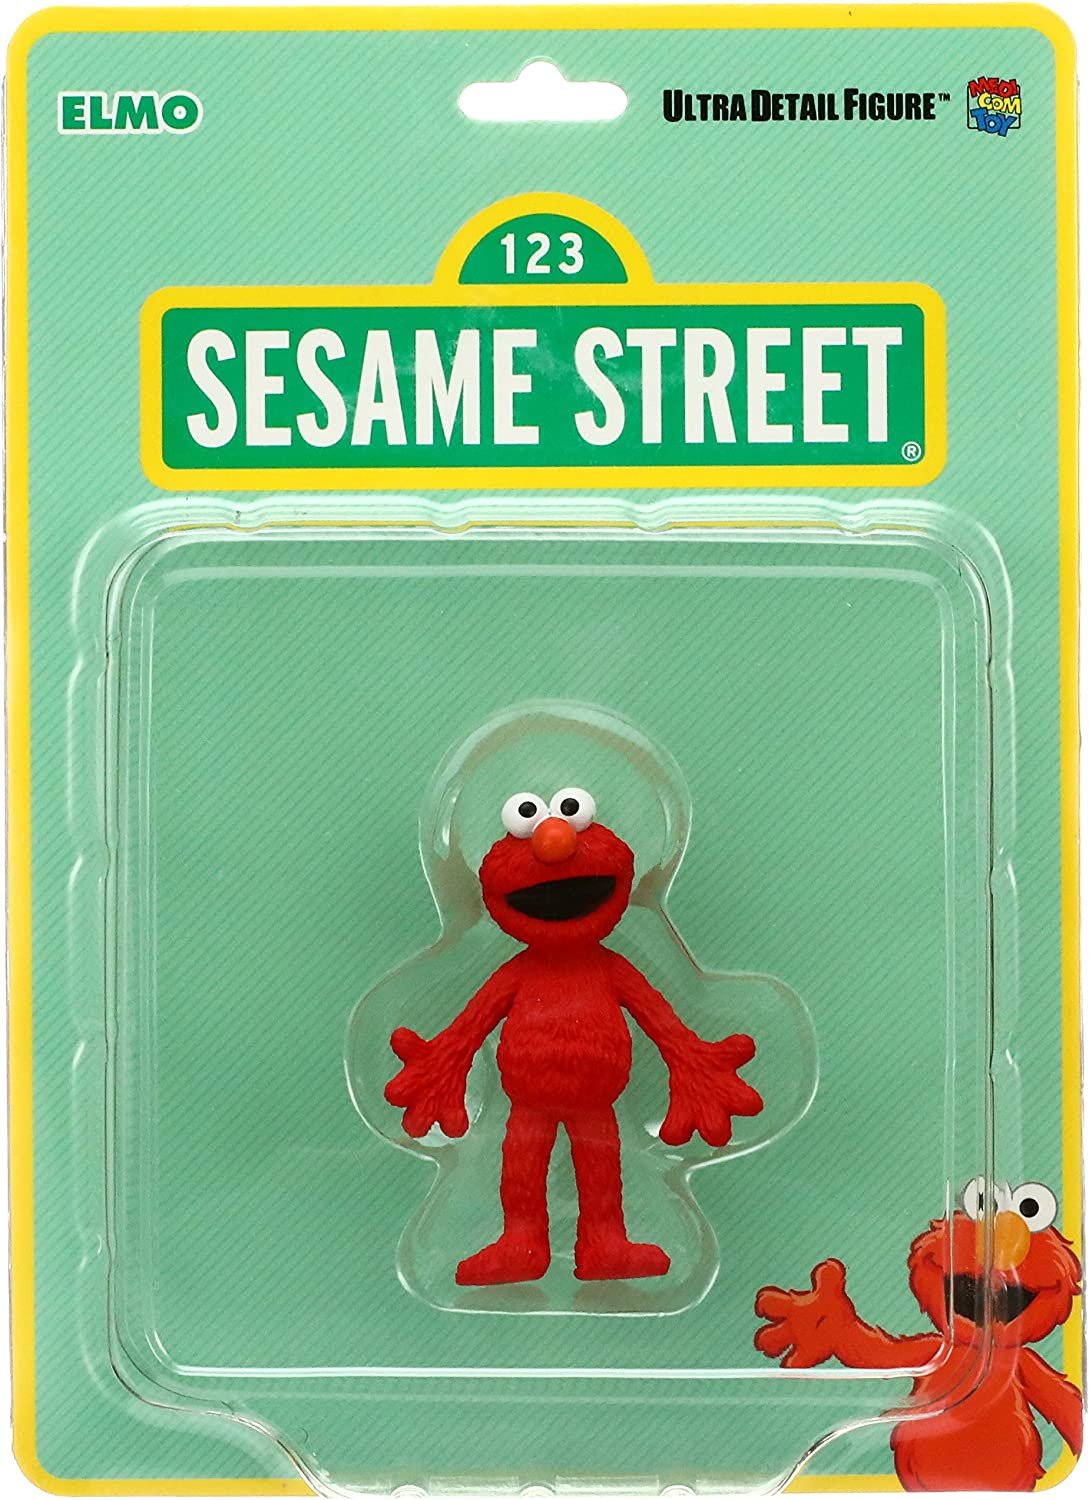 MEDICOM TOY Muppets SESAME STREET ELMO Ultra Detail Figure NEW